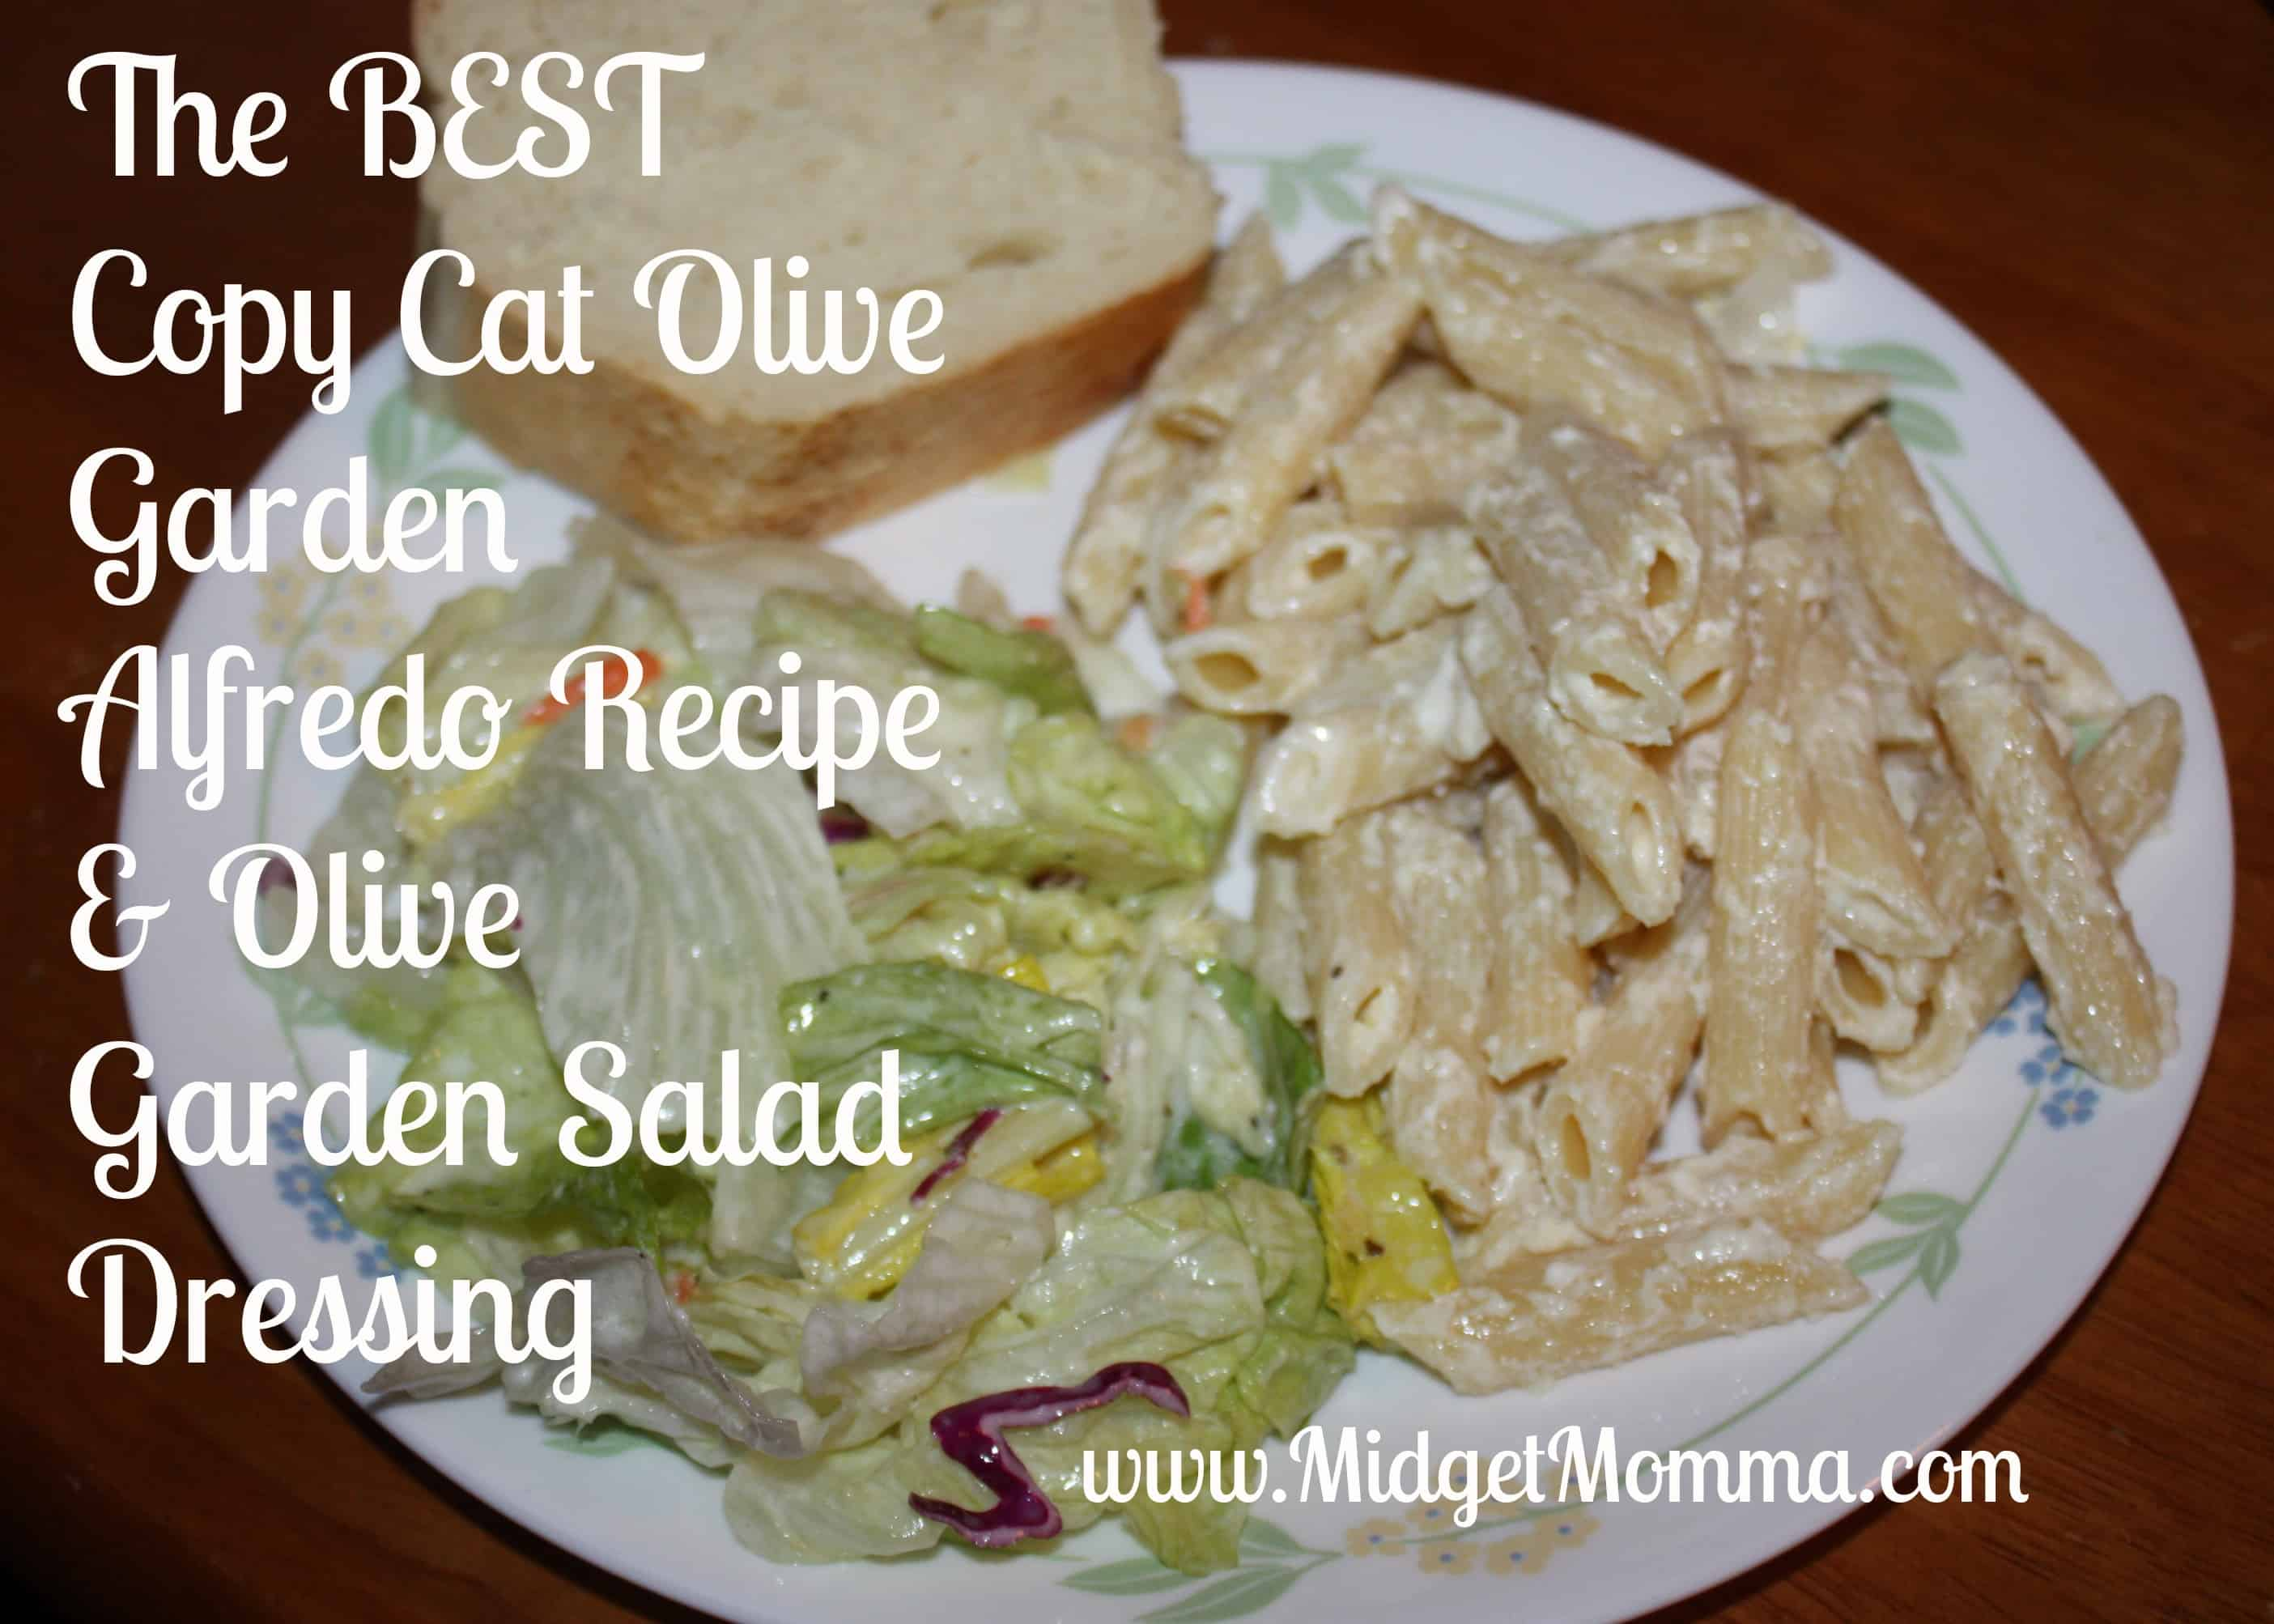 Olive Garden at Home: Alfredo Sauce & Salad dressing recipe ...